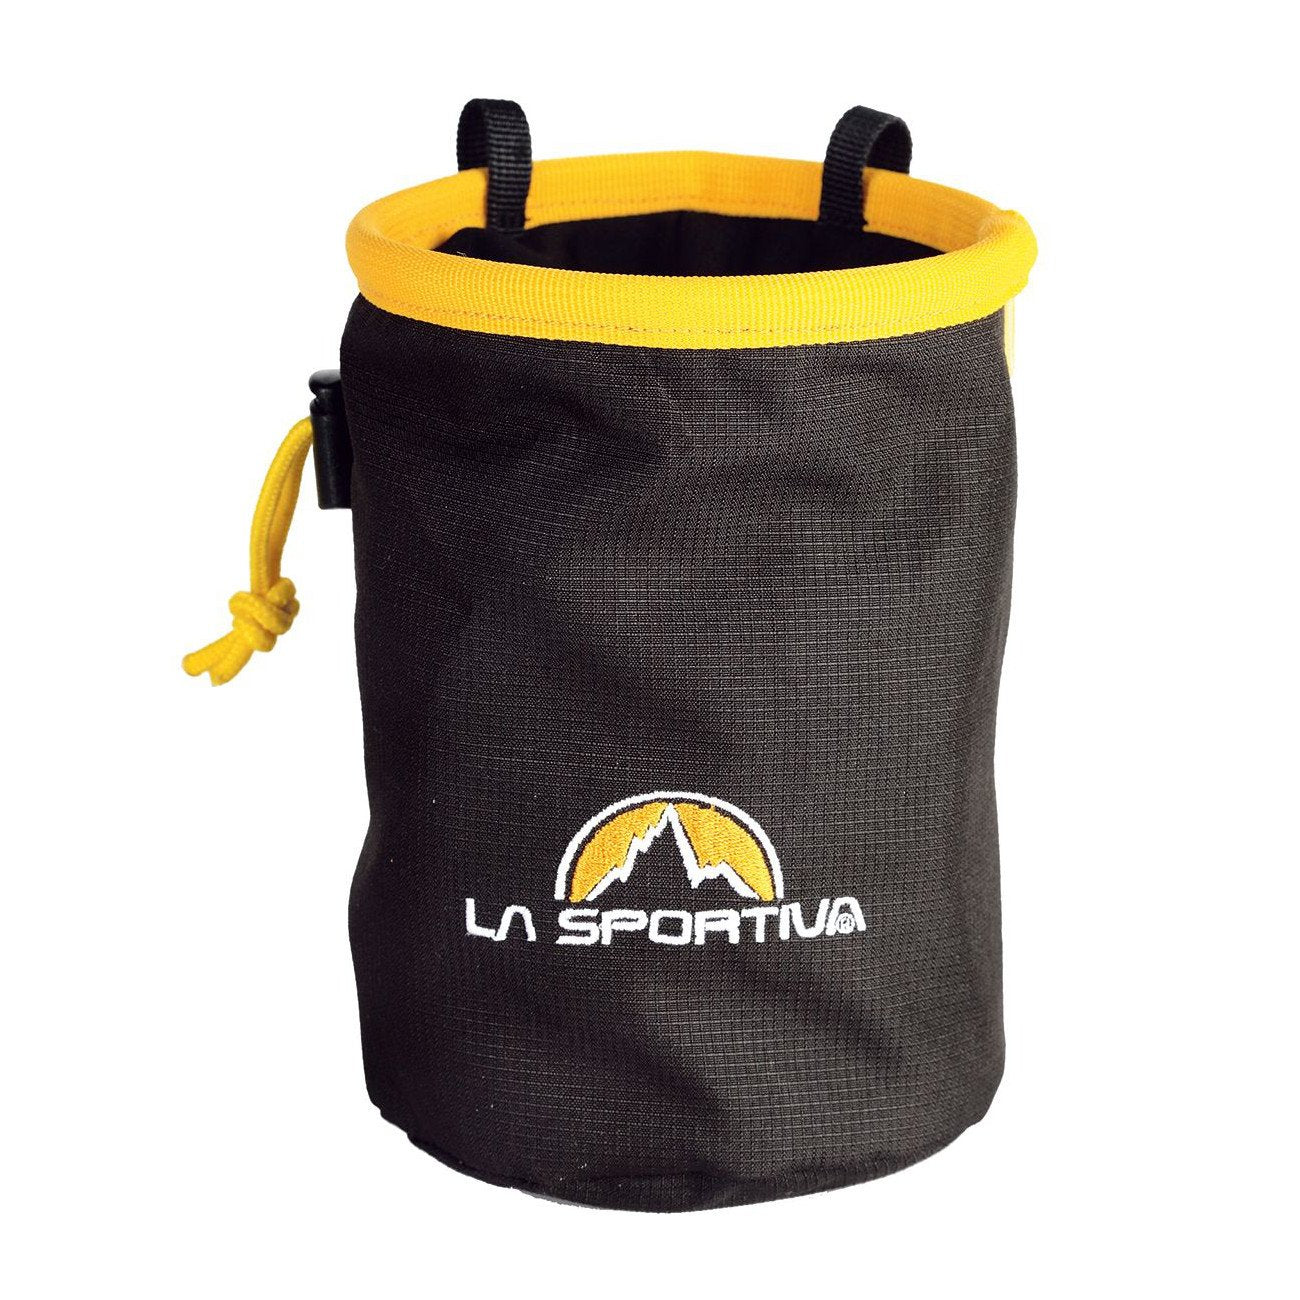 La Sportiva Chalk Bag, front view in black and yellow colours